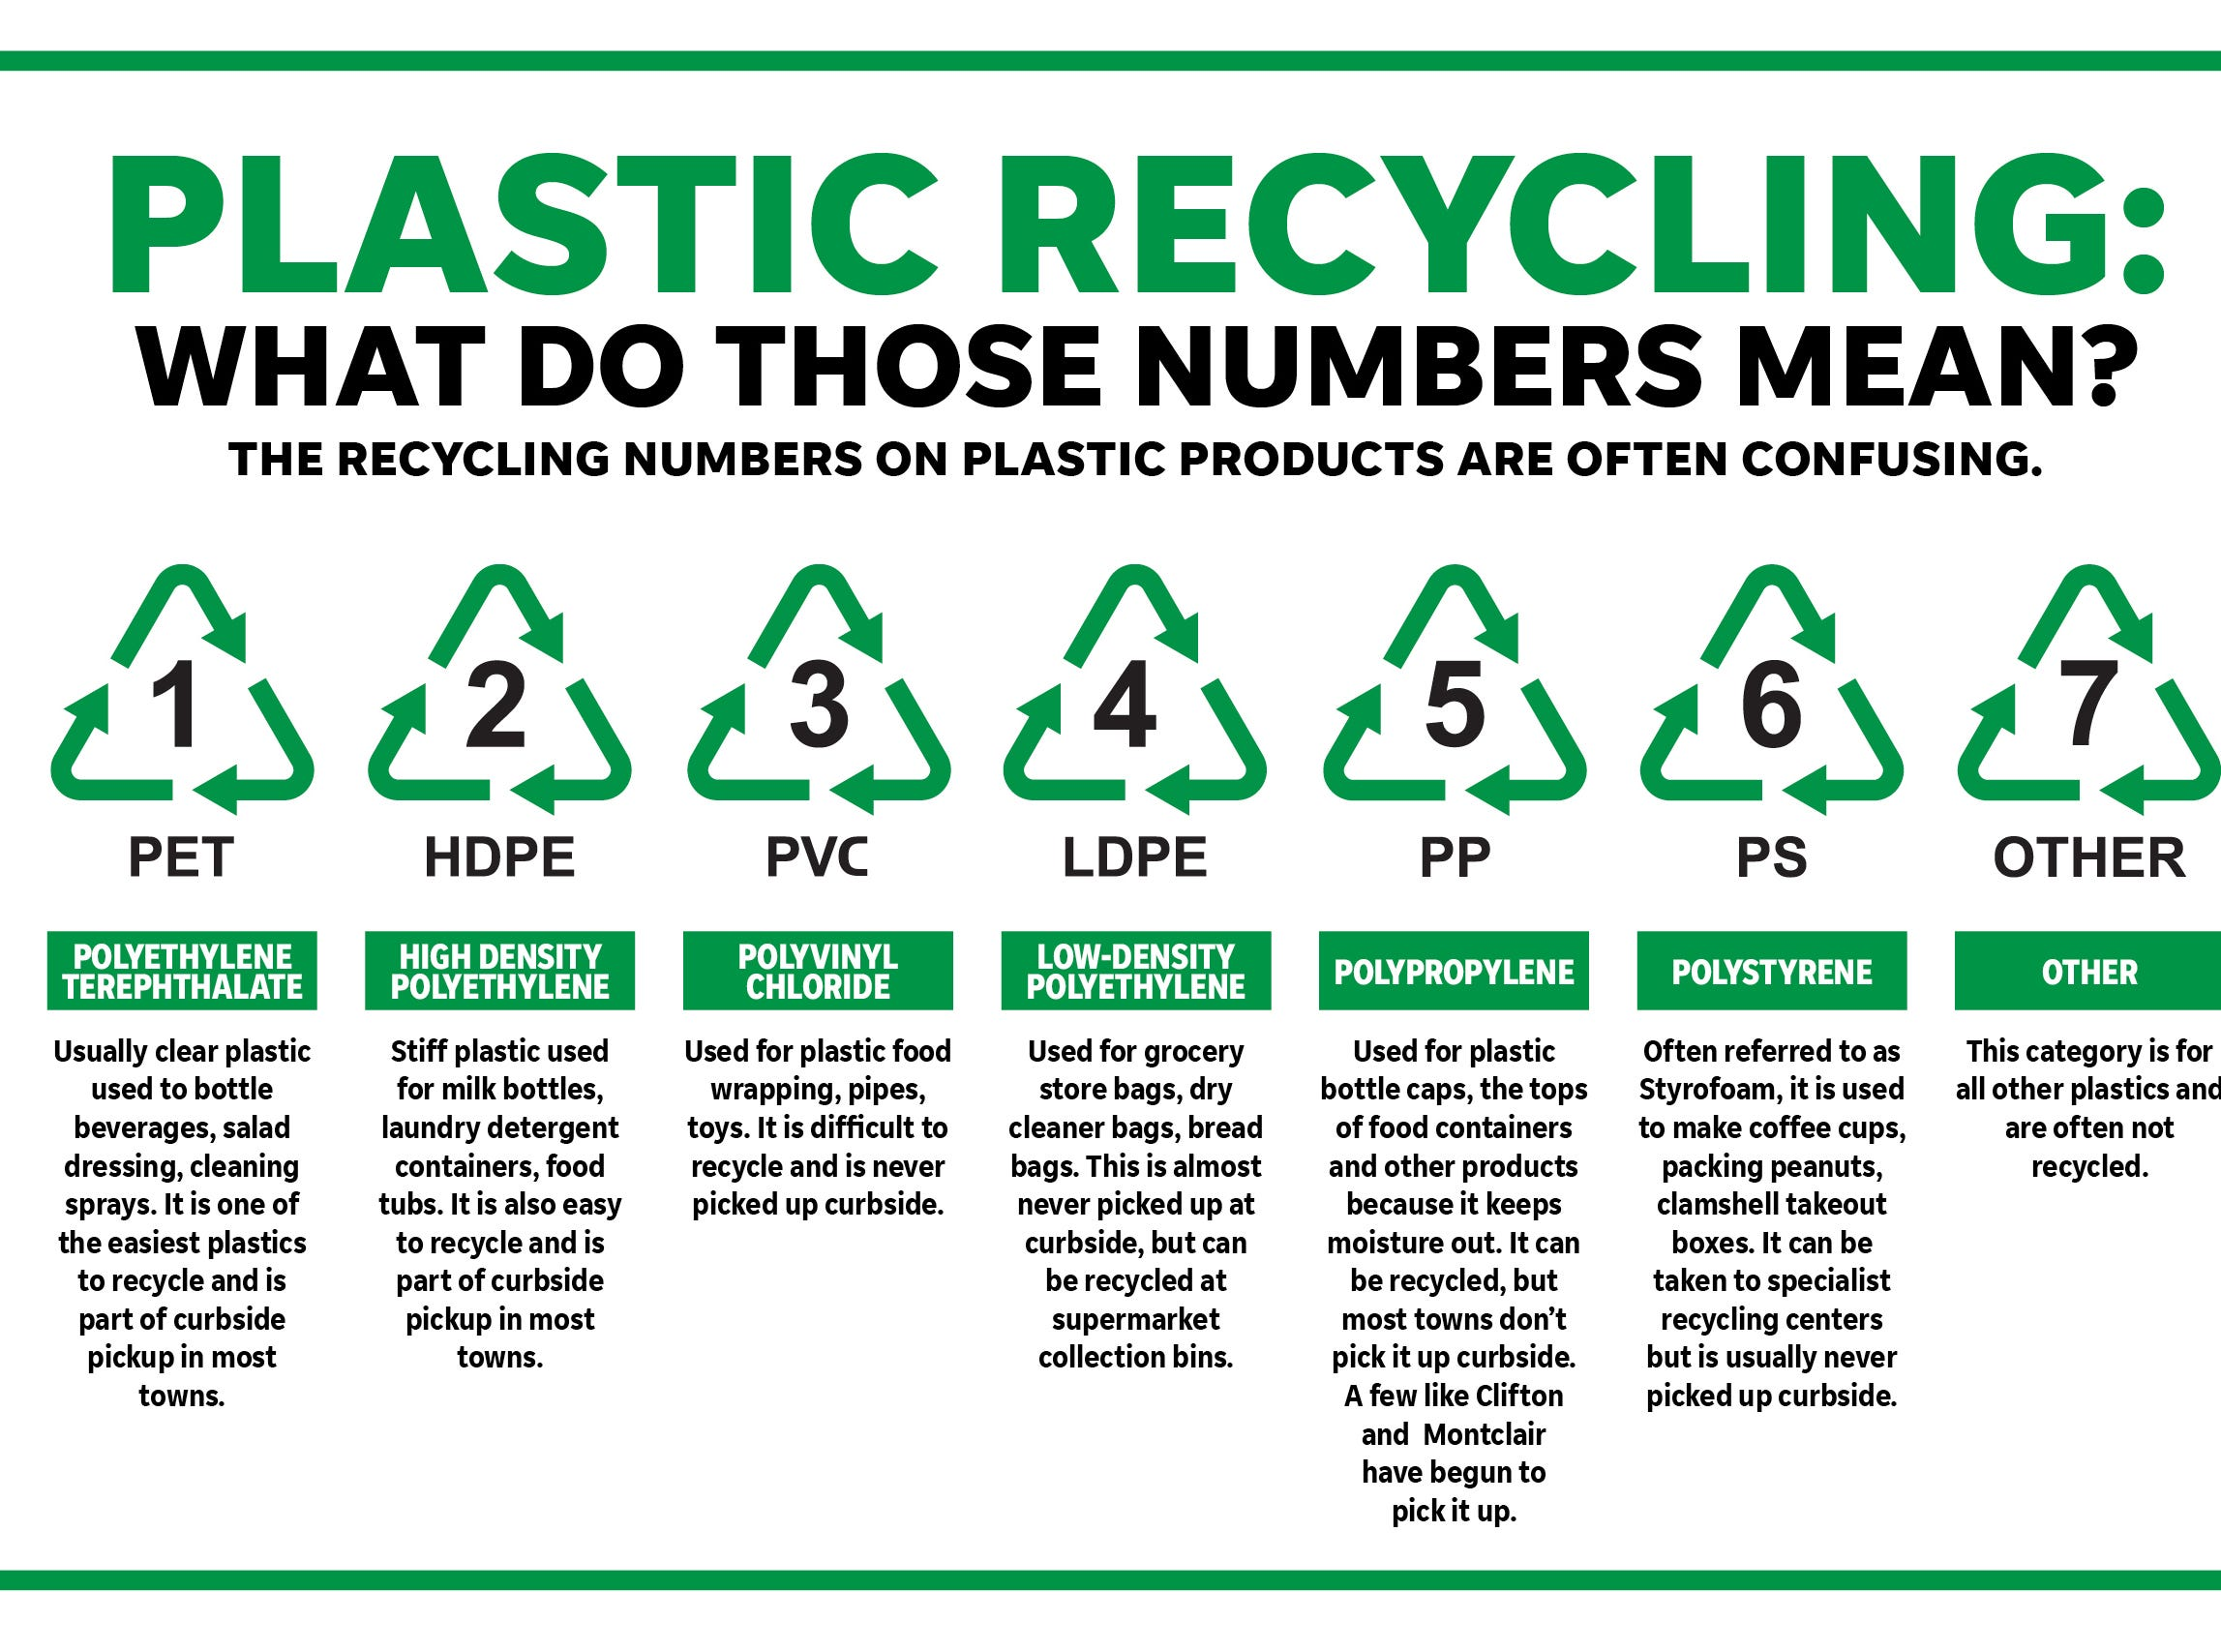 Plastic recycling numbers defined